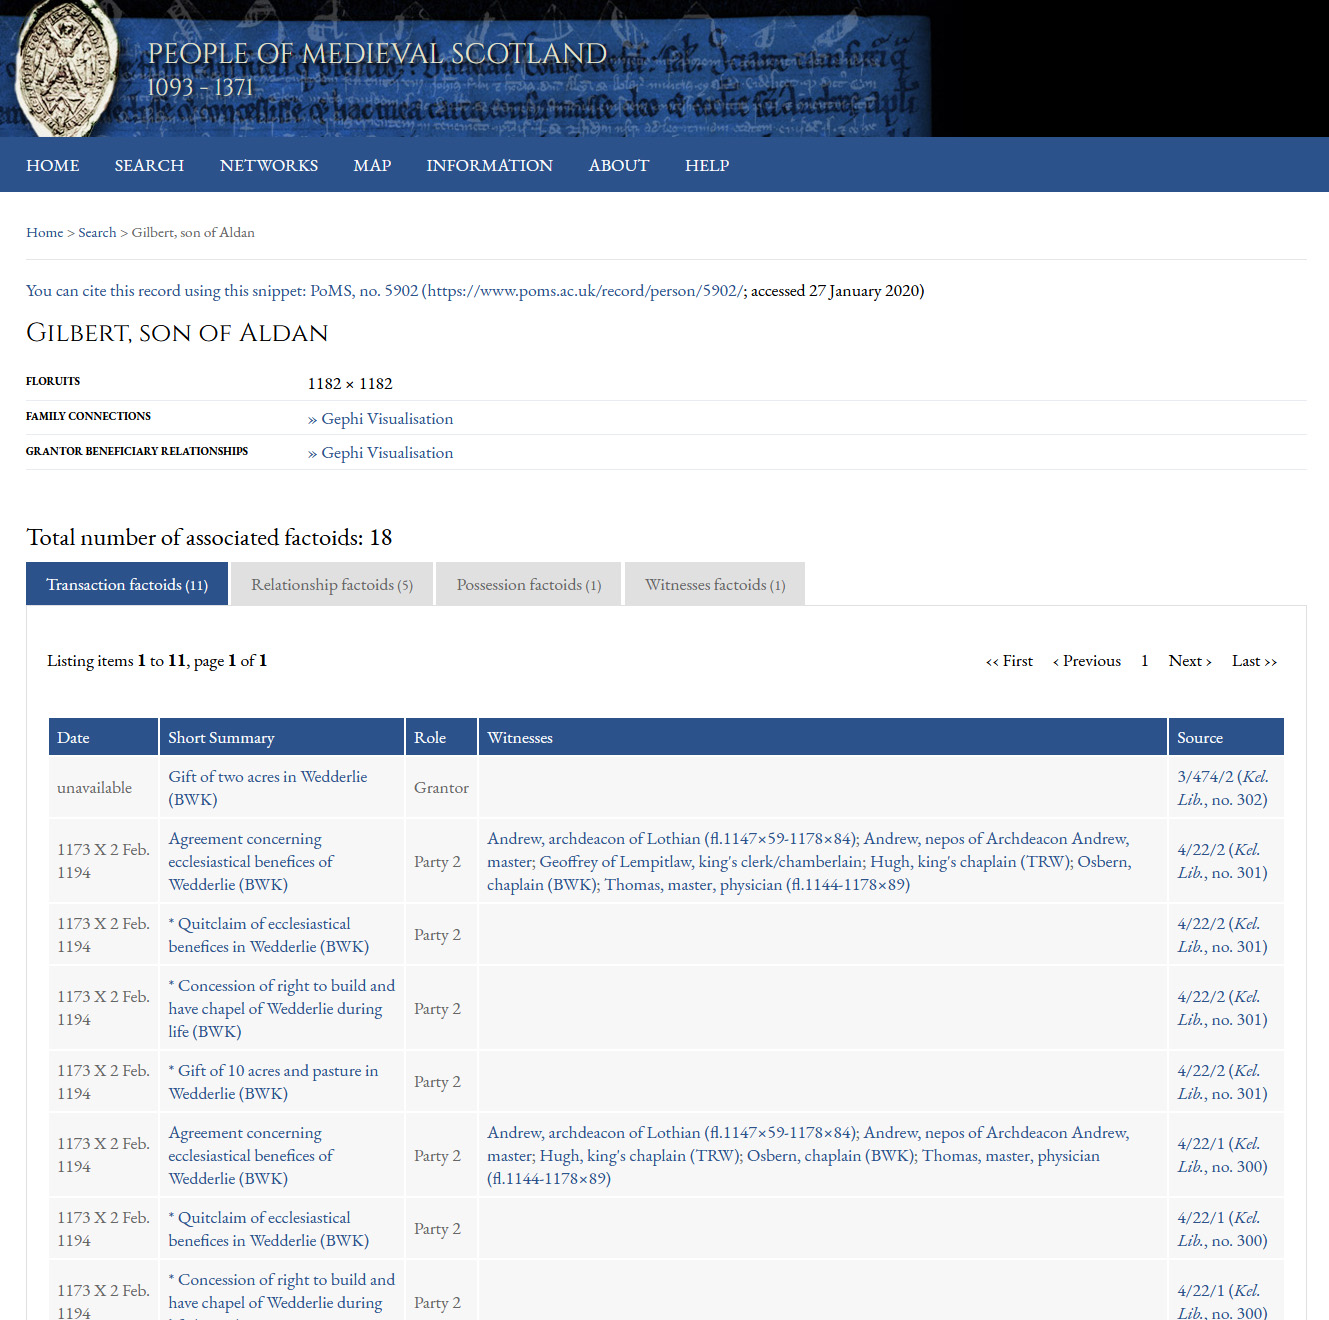 Database entry of records relating to 'Gilbert, son of Aldan'